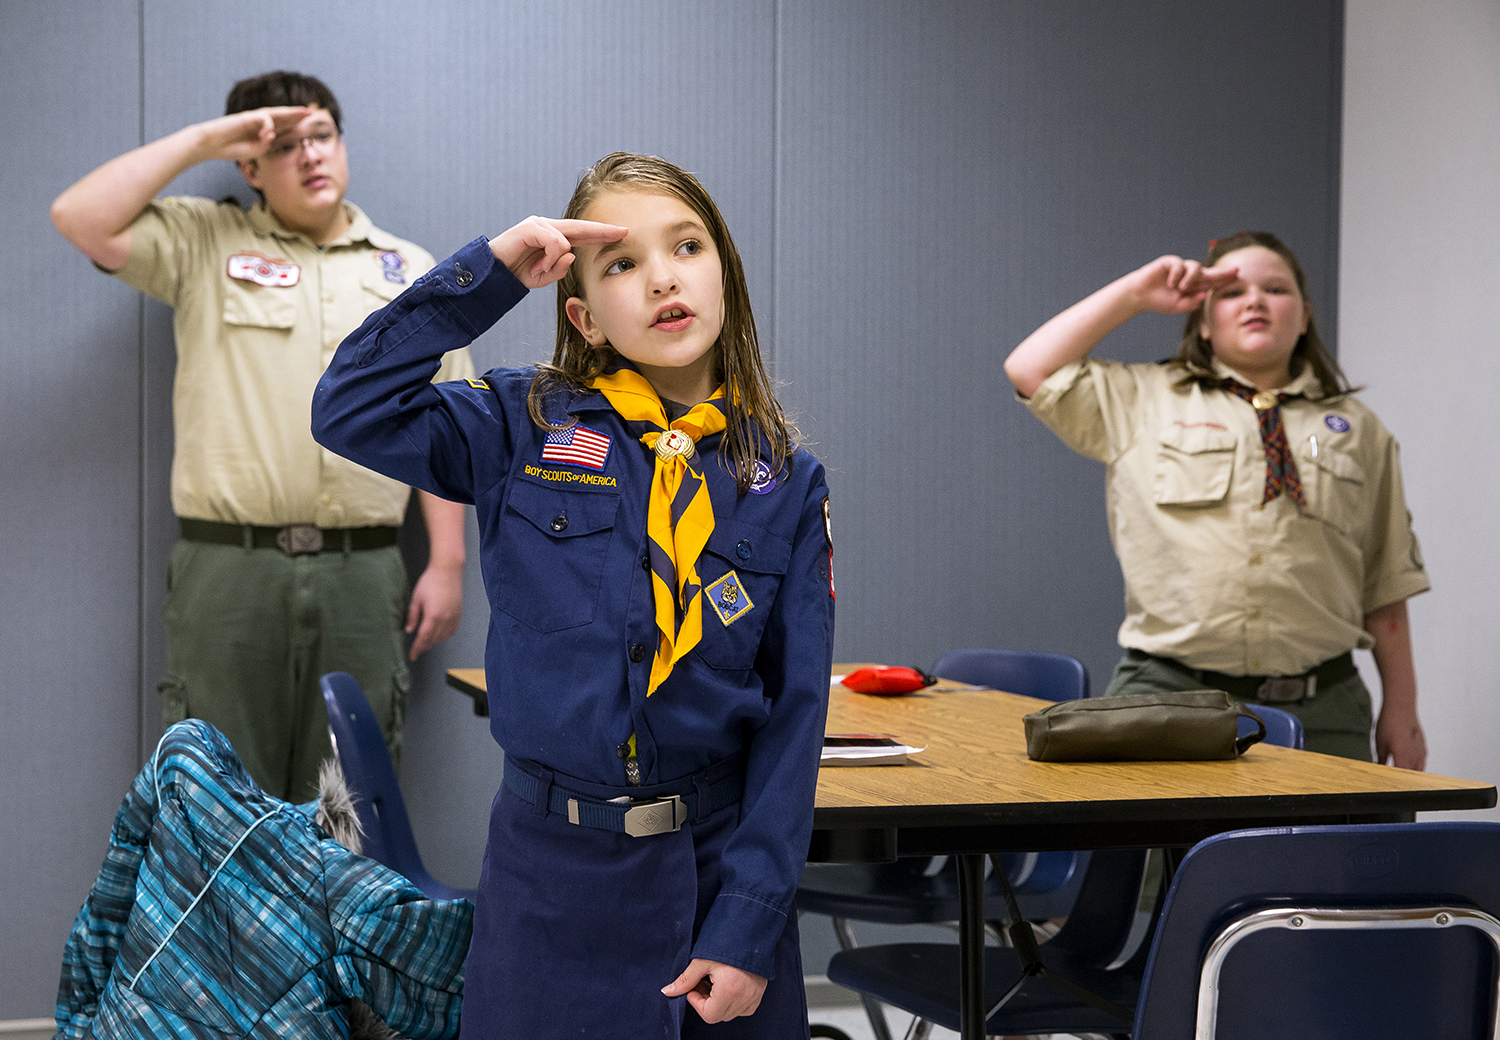 Natasha O'Brien salutes the flag during the Pledge of Allegiance at the start of Cub Scout Pack 38's meeting Thursday, Feb. 16, 2018 at St. John's Lutheran Church. O'Brien and Alison Higginson, right, are members of Springfield's first Cub Scout den to welcome girls as members. Alison's brother, Clay, left, a member of Boy Scout Troop 210, helped teach a first aid lesson during the meeting. [Rich Saal/The State Journal-Register]